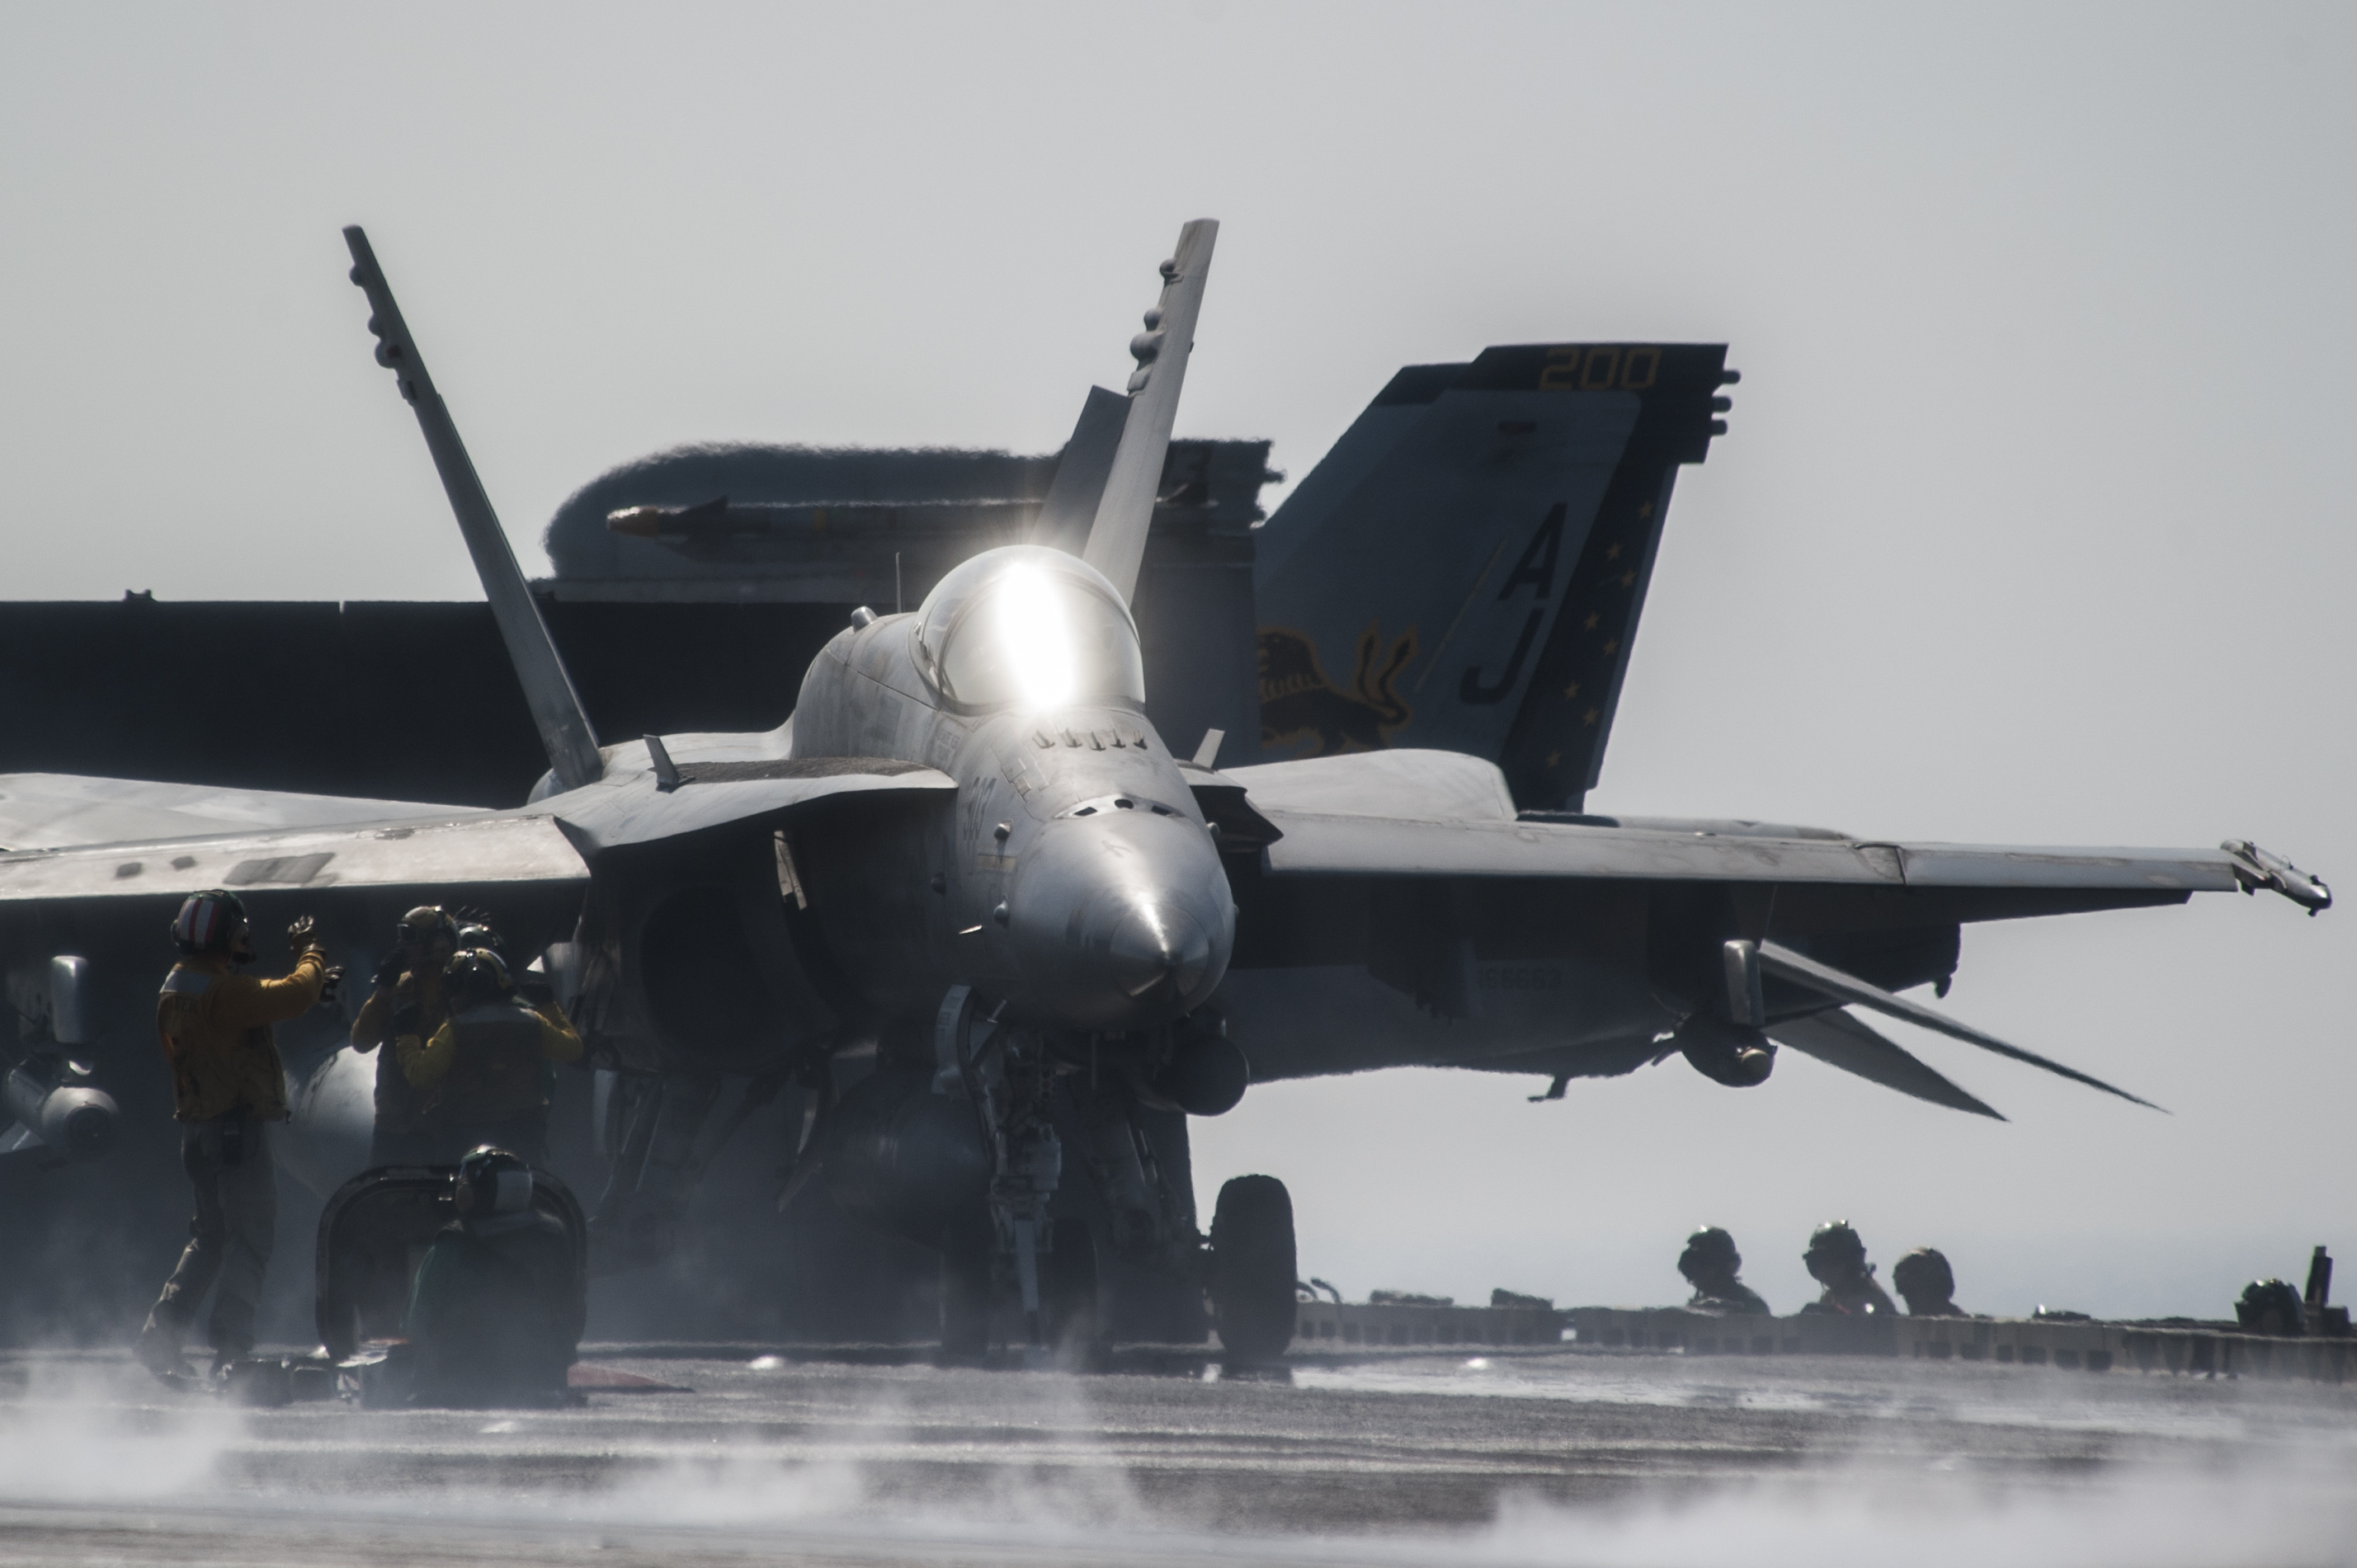 An F/A-18C Hornet assigned to the Valions of Strike Fighter Squadron (VFA) 15 takes off from the flight deck of the aircraft carrier USS George H.W. Bush (CVN-77). US Navy Photo